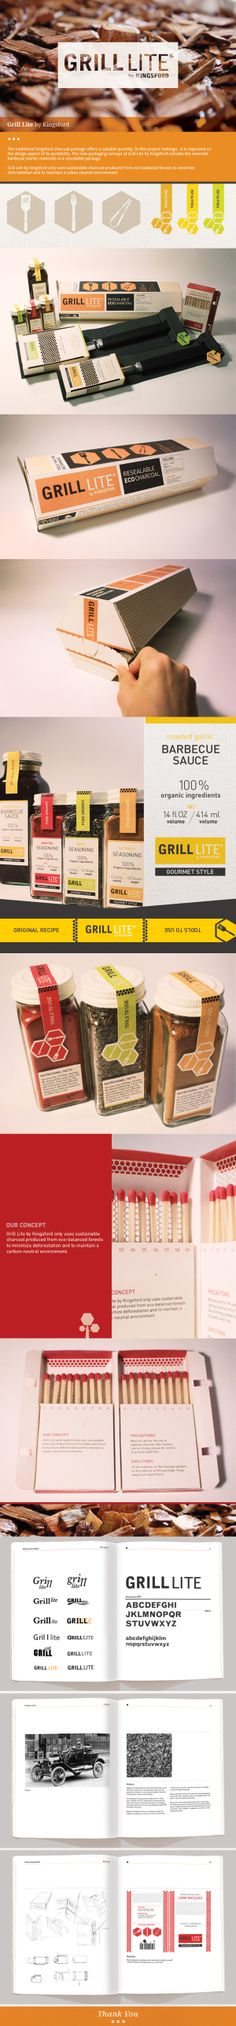 Grill Lite by Kingsford by Guea-Yea Lian on Behance. Clever #identity #packaging #branding PD